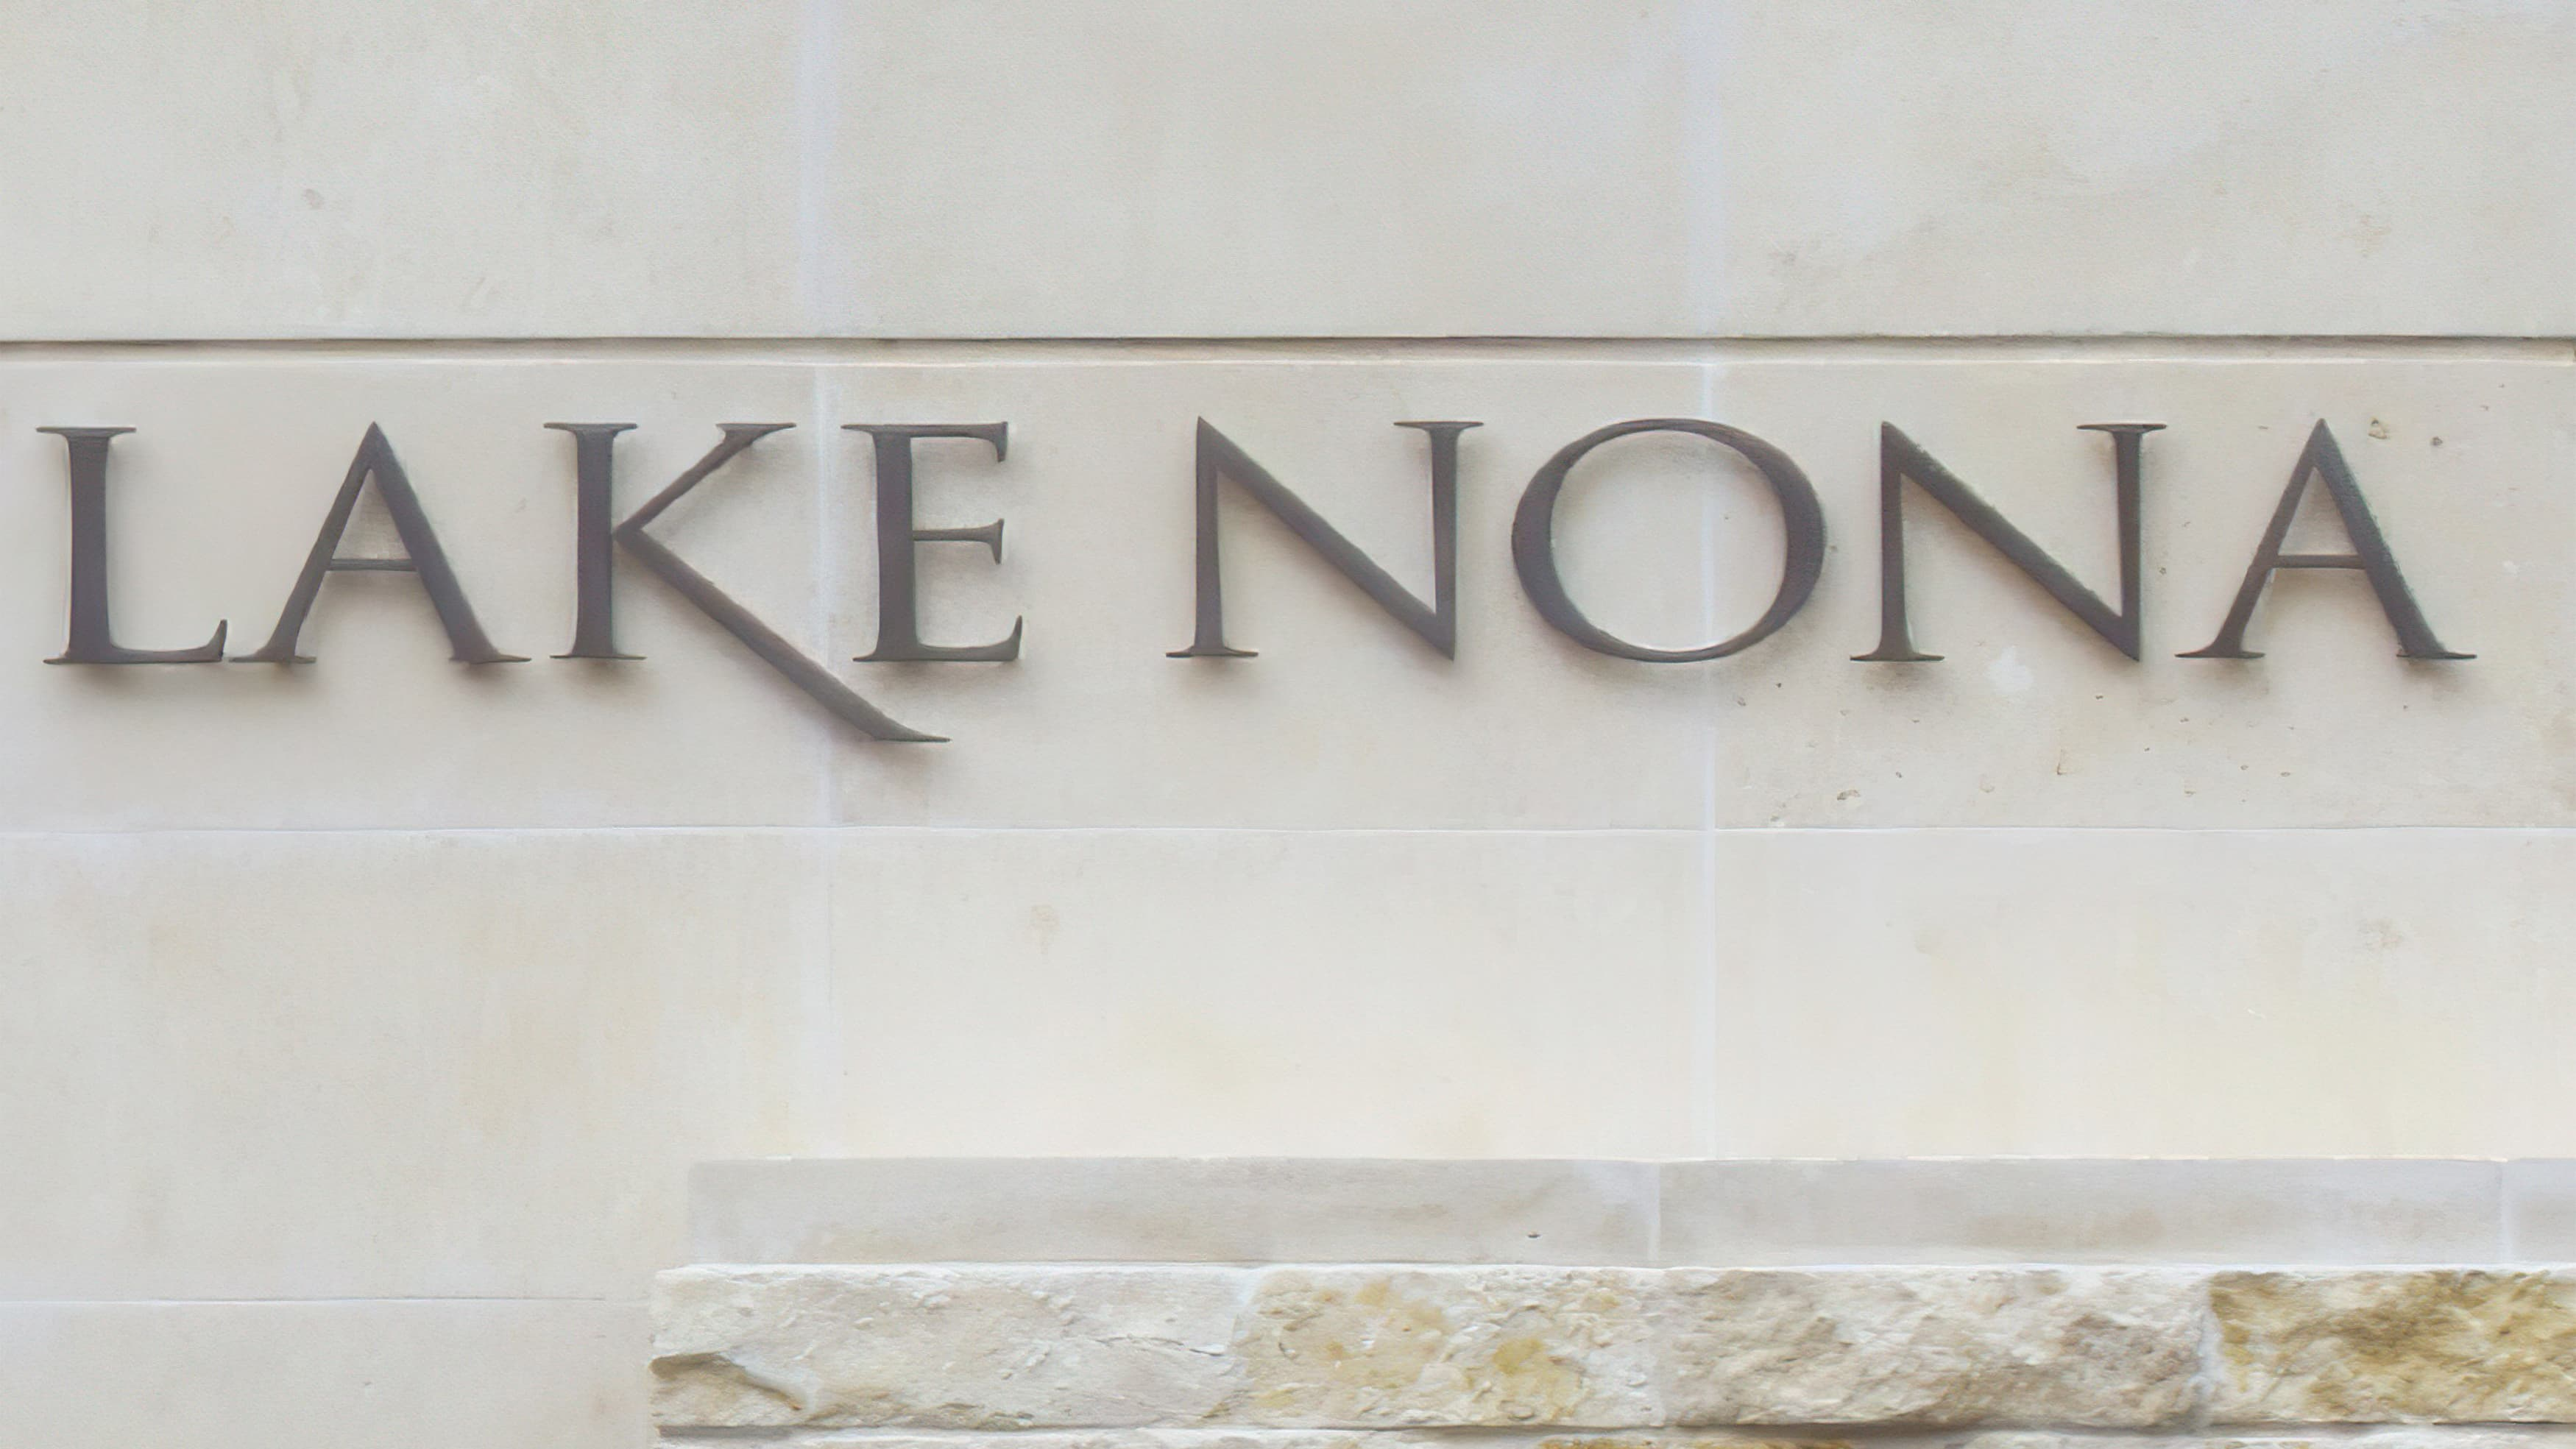 Dimensional Lake Nona brand identity applied to limestone monument